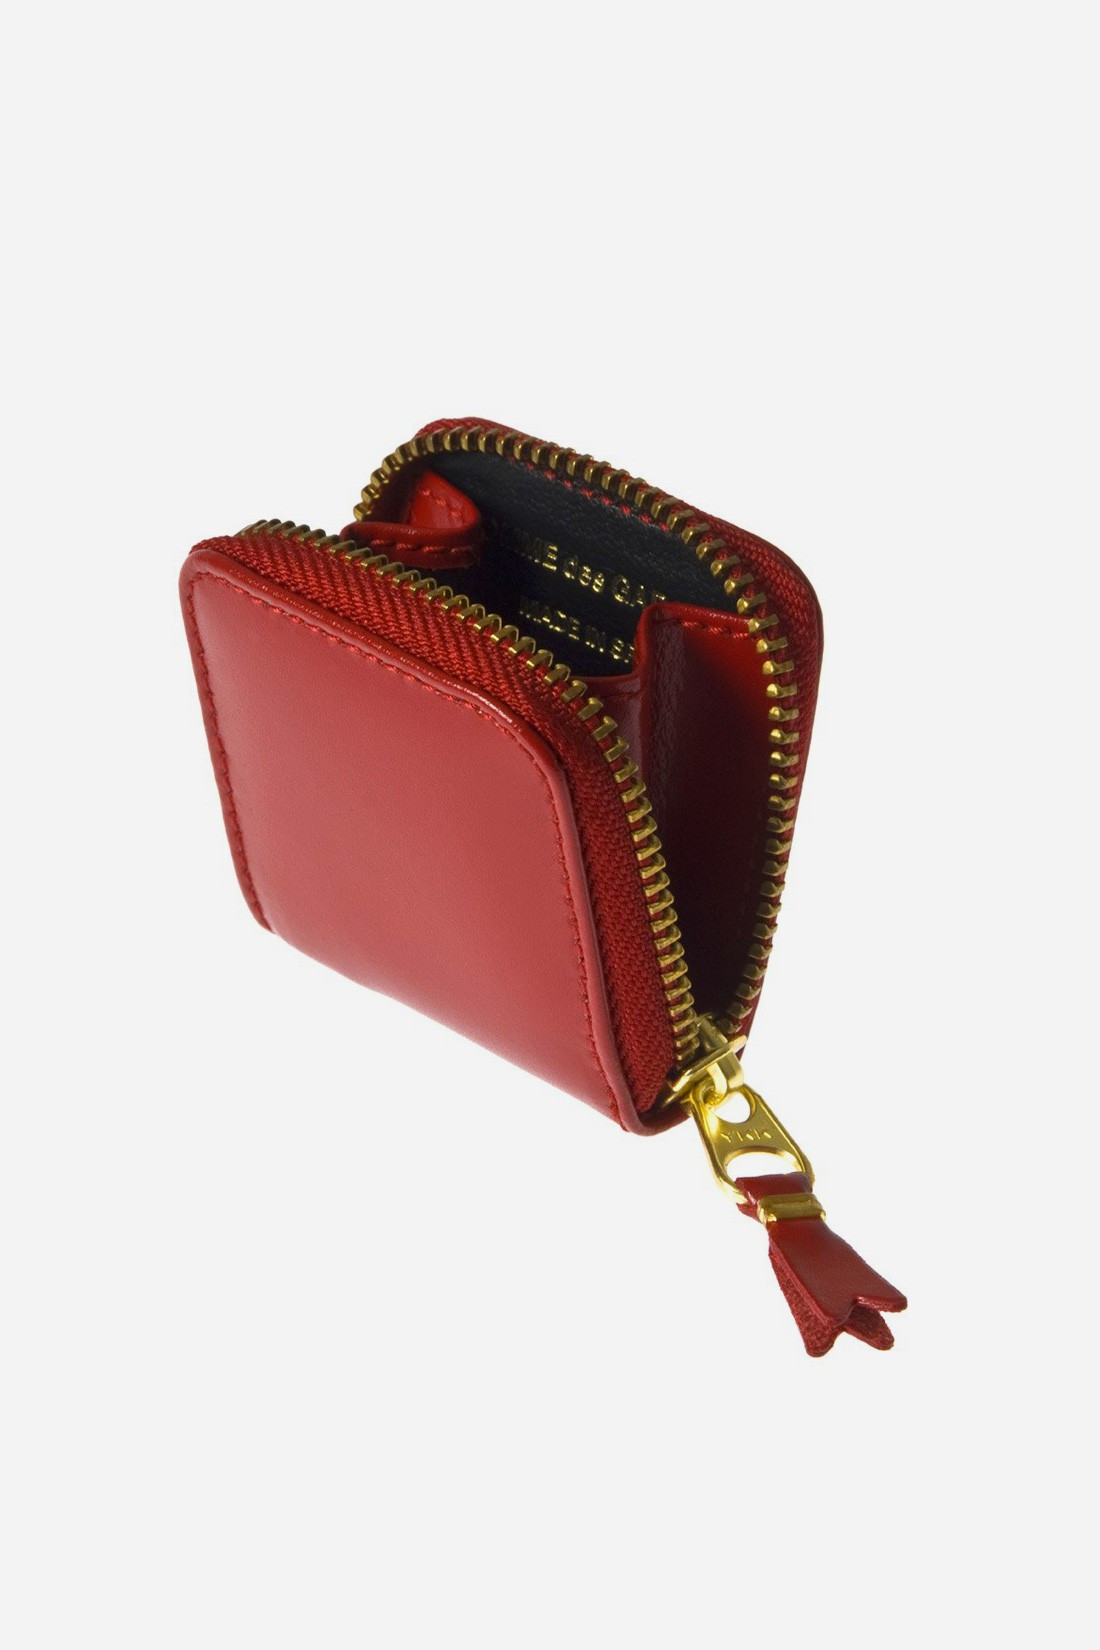 CDG WALLETS FOR WOMAN / Cdg classic leather sa4100 Red